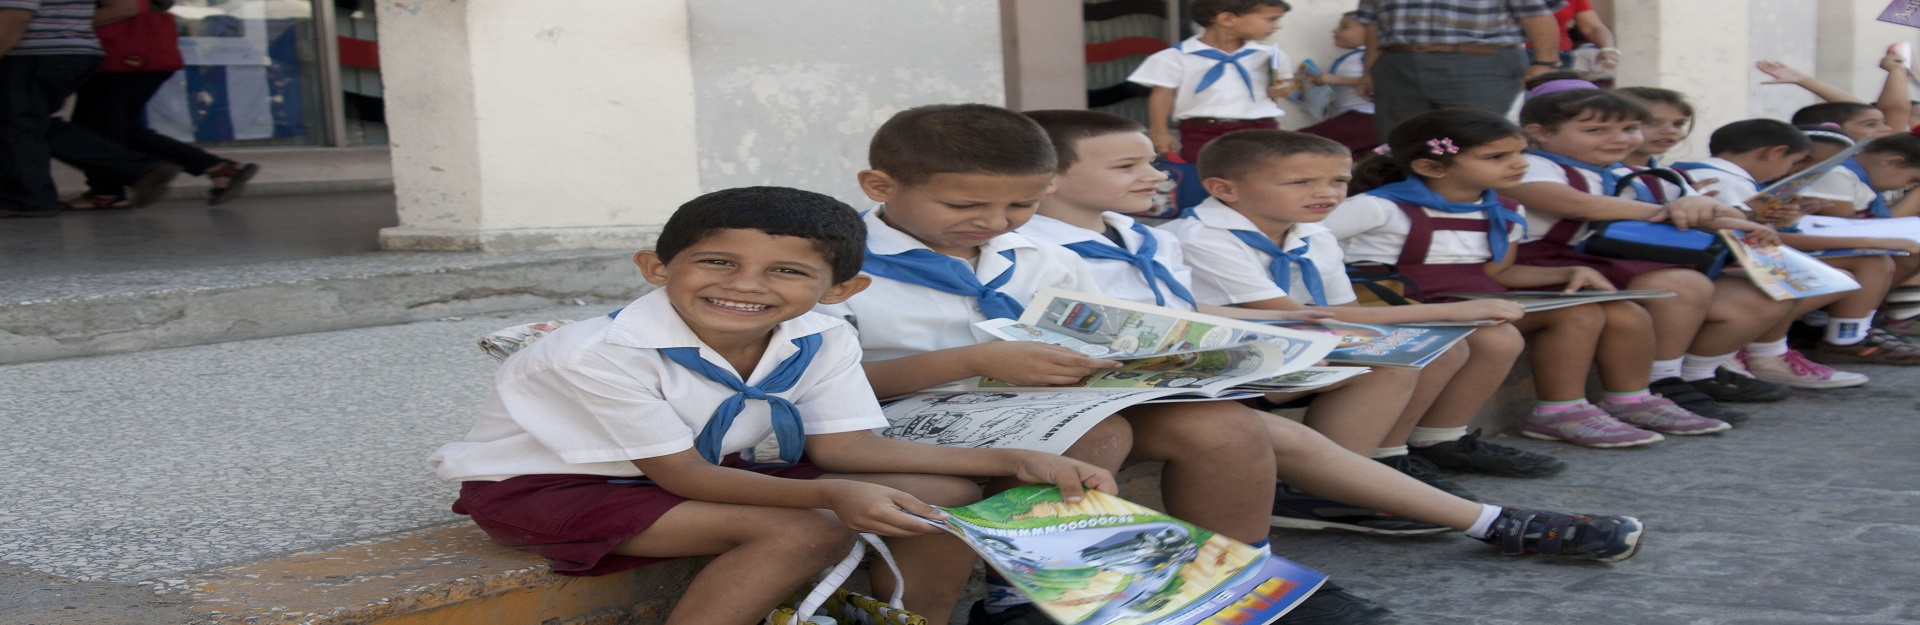 Kinder und Literatur in Artemis, Cuba Travel